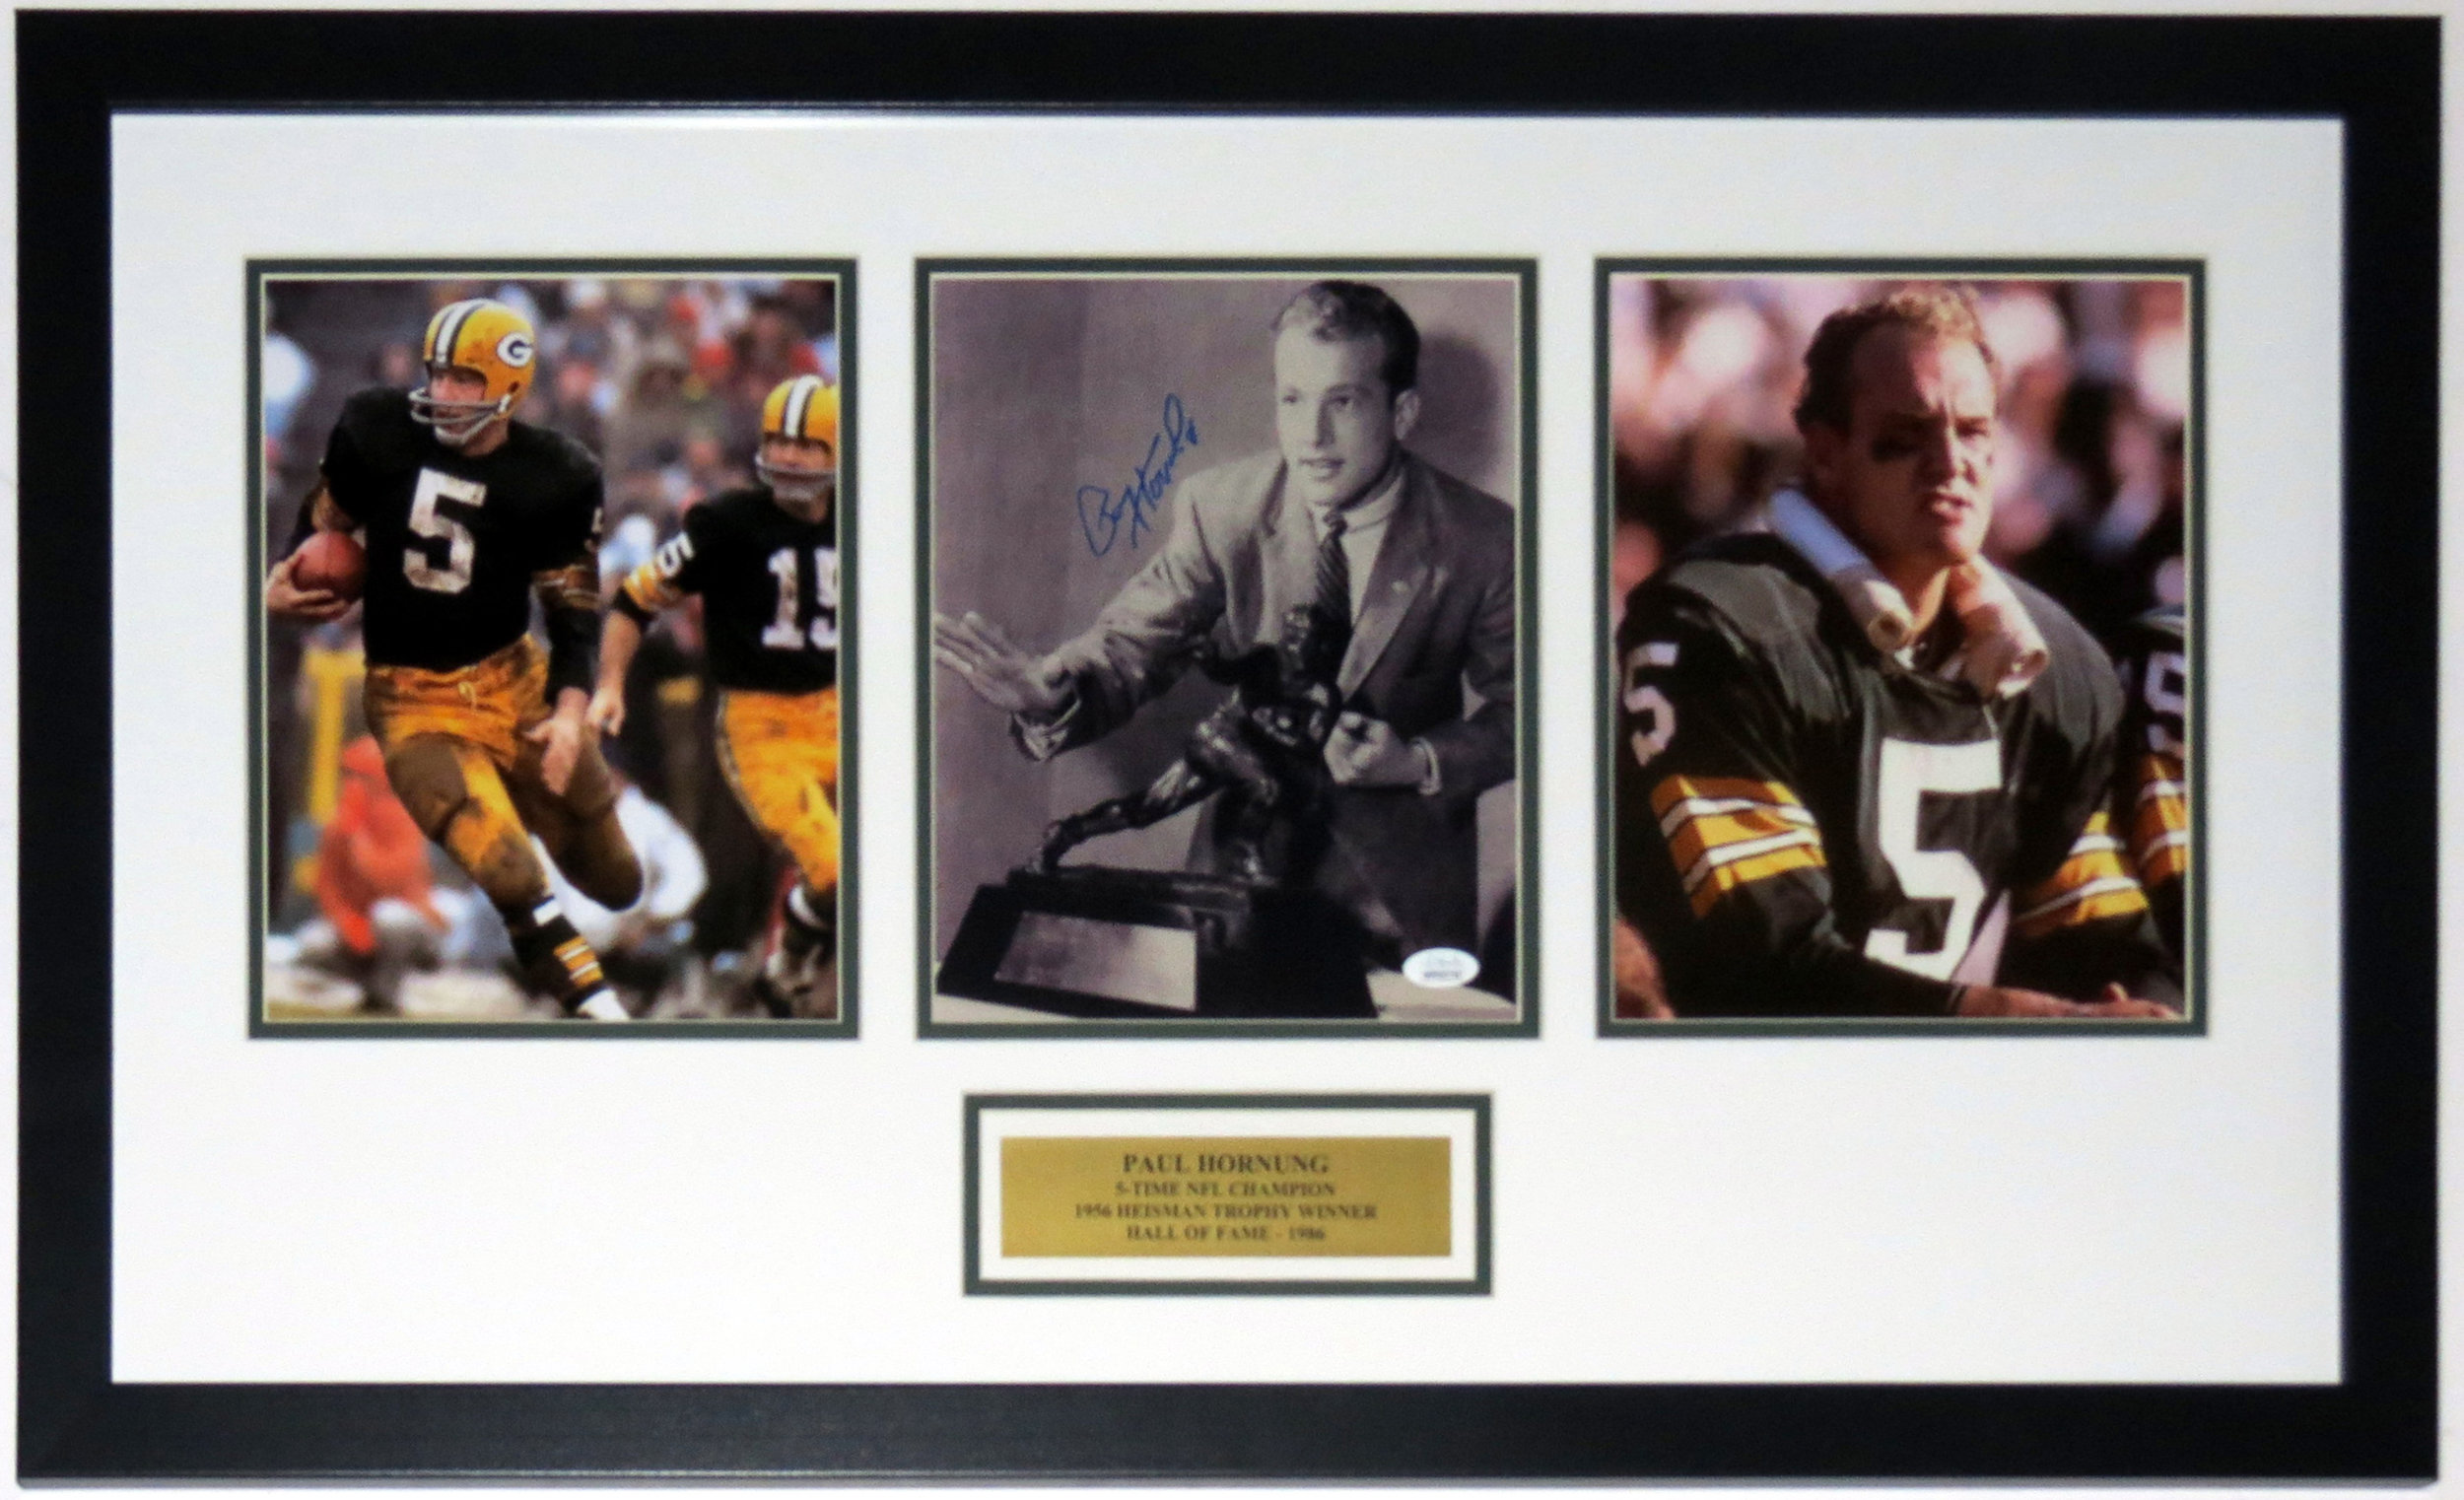 Paul Hornung Signed Green Bay Packers 8x10 Photo Compilation - JSA COA Authenticated - Professionally Framed & Plate